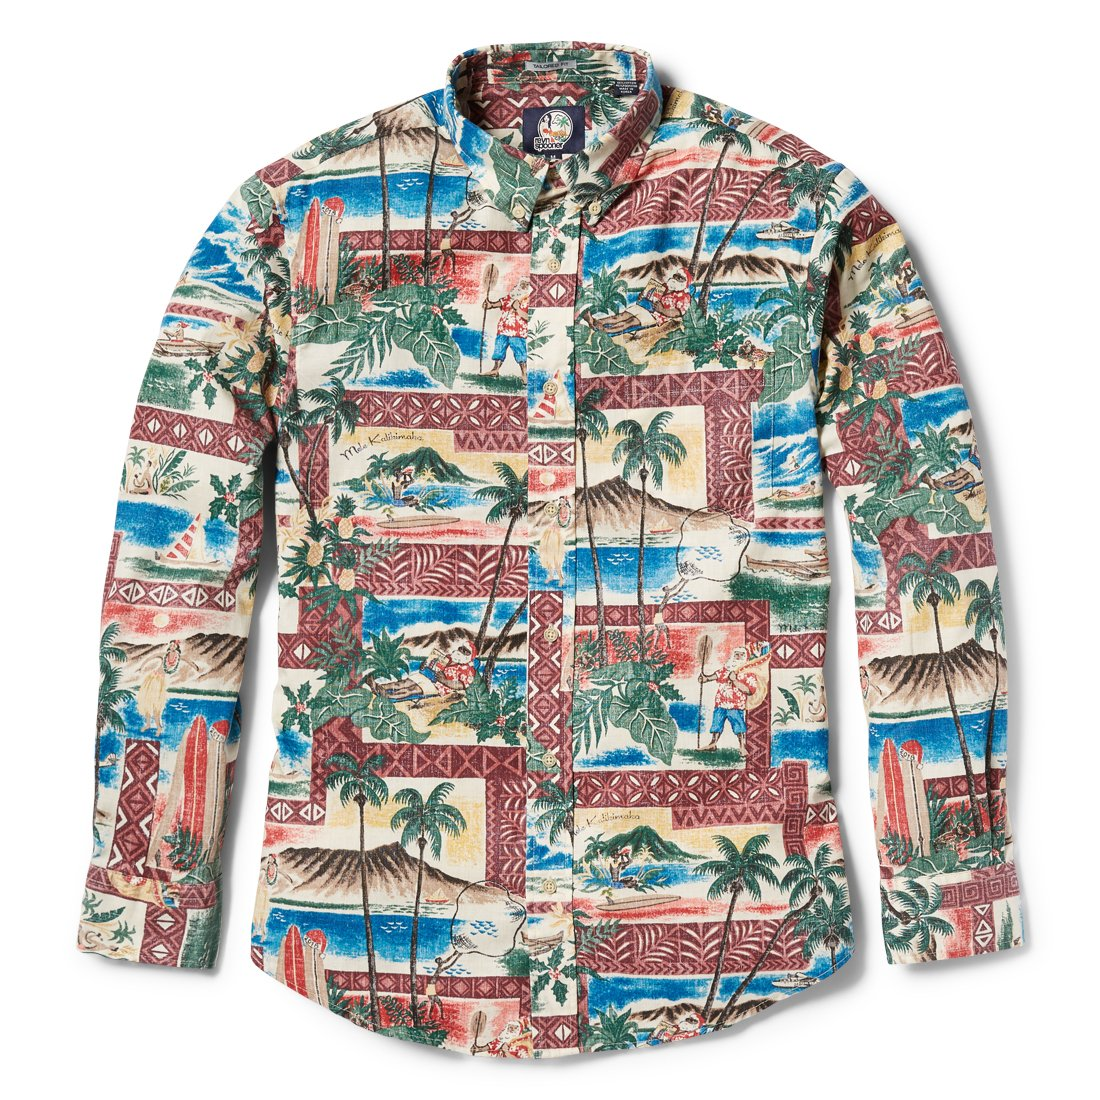 TAILORED FIT BUTTON FRONT LONG SLEEVE All sale items are FINAL SALE and cannot be returned or exchanged. Weve washed this shirt in our special Weekend Wash, which gives a softer feel and a more relaxed look. Now you can wear your favorite weekend shirt all week long. This years Hawaiian Christmas print is our 36th design since the series was first introduced in 1983. Against a backdrop of ocean and mountain scenes framed by tapa borders, Santa is shown carrying his treasured bag of gifts, paddling his canoe, and relaxing on his lounge chair after his work is finally done. See if you can spot the year 2018 in two places in the print. A must-have for the avid collector. Button Front Tailored Fit: Trimmer than traditional aloha shirts for a modern tailored look Full button front closure Button-down collar Short sleeve Print-matched left chest pocket Rounded shirt tail for a contemporary untucked look Spooner Kloth TM-55% cotton, 45% polyester Wrinkle free; machine wash cold, tumble dry l